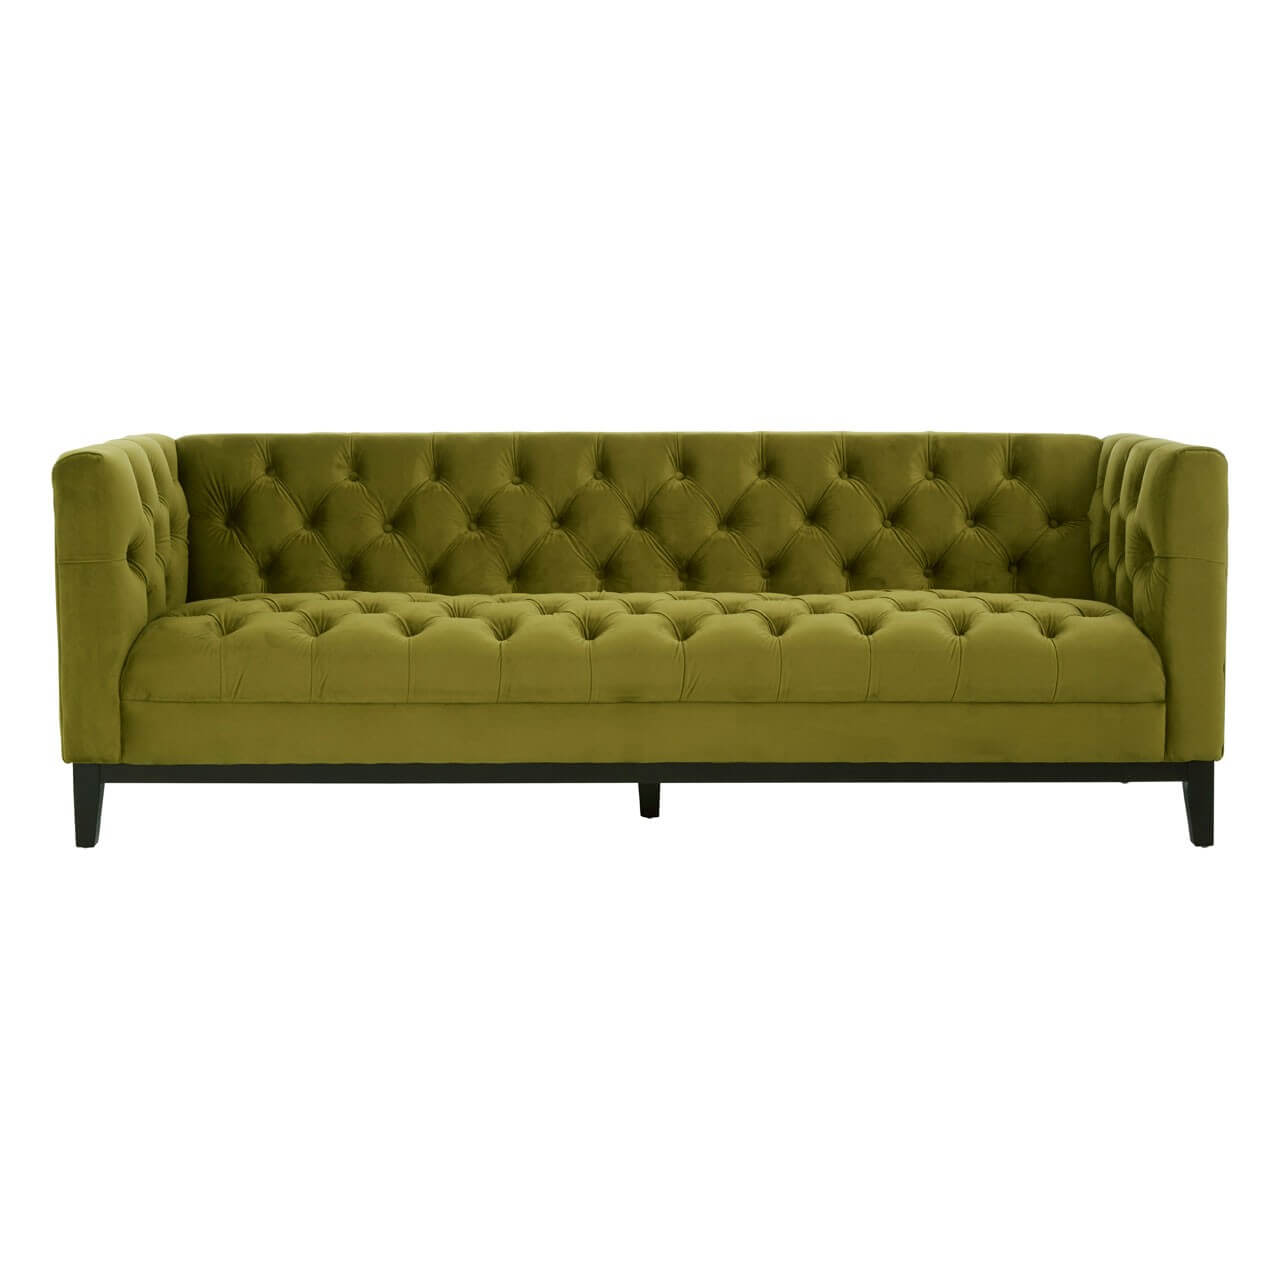 Designer Sofas Marietta 3 Seater Viola Moss Green Fabric Sofa With Rubberwood Feet | Designer Sofas 4u